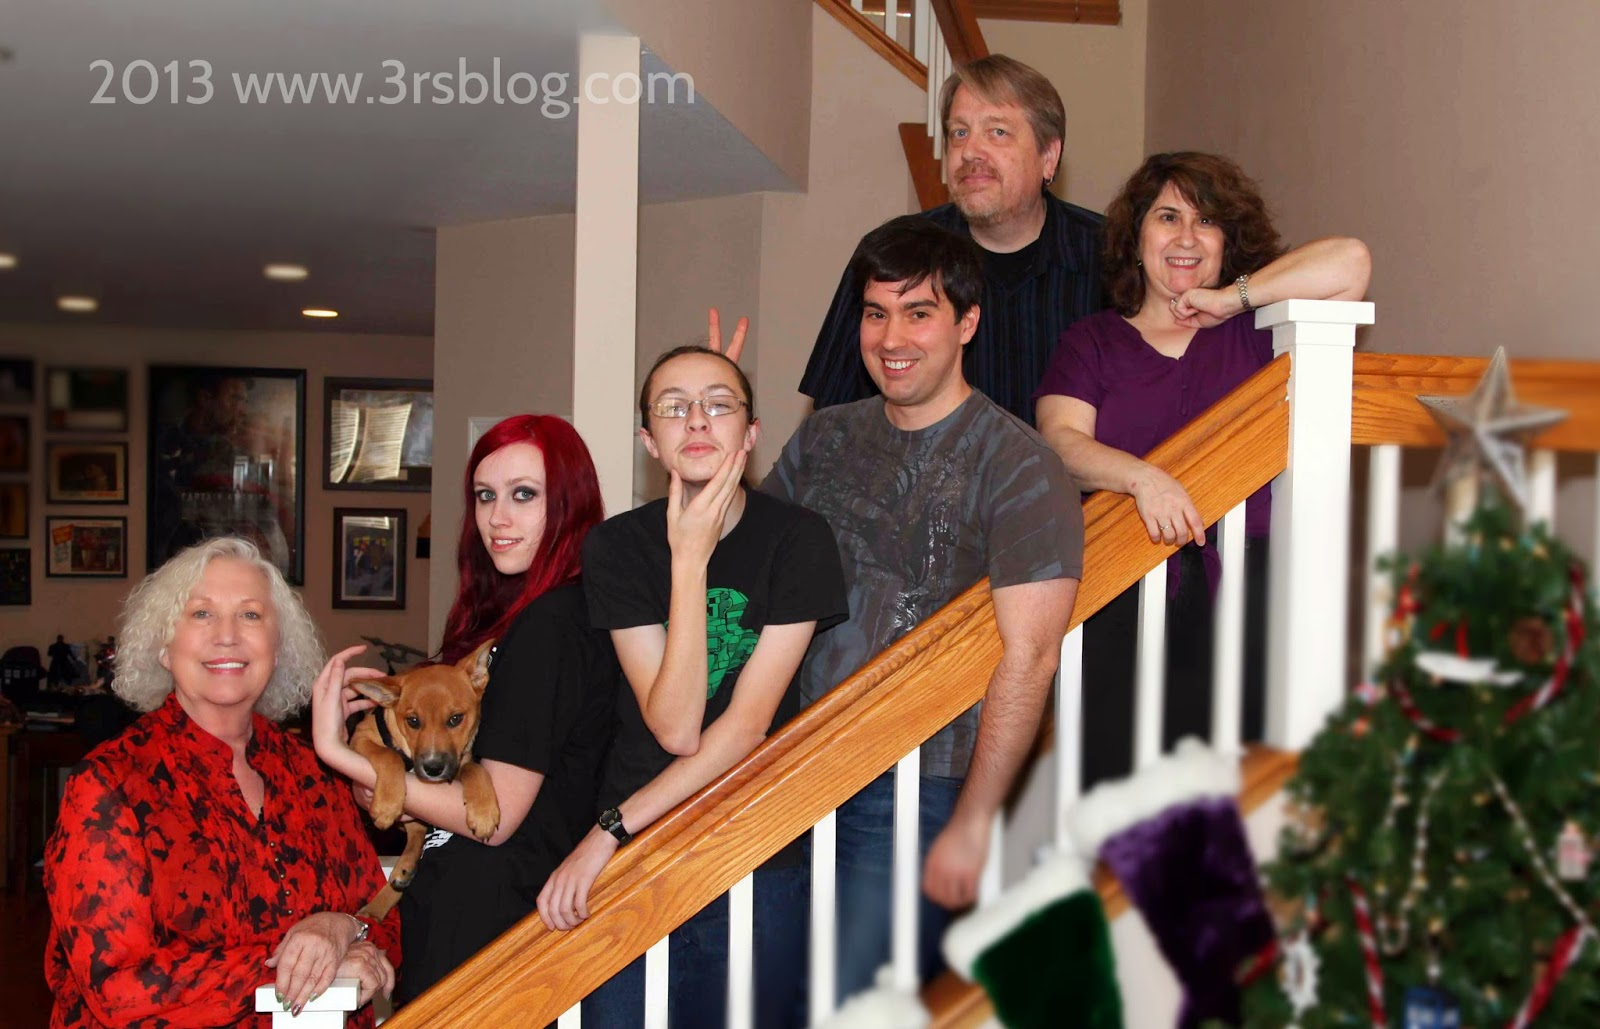 Christmas 2013: the less-goofy version of our family portrait